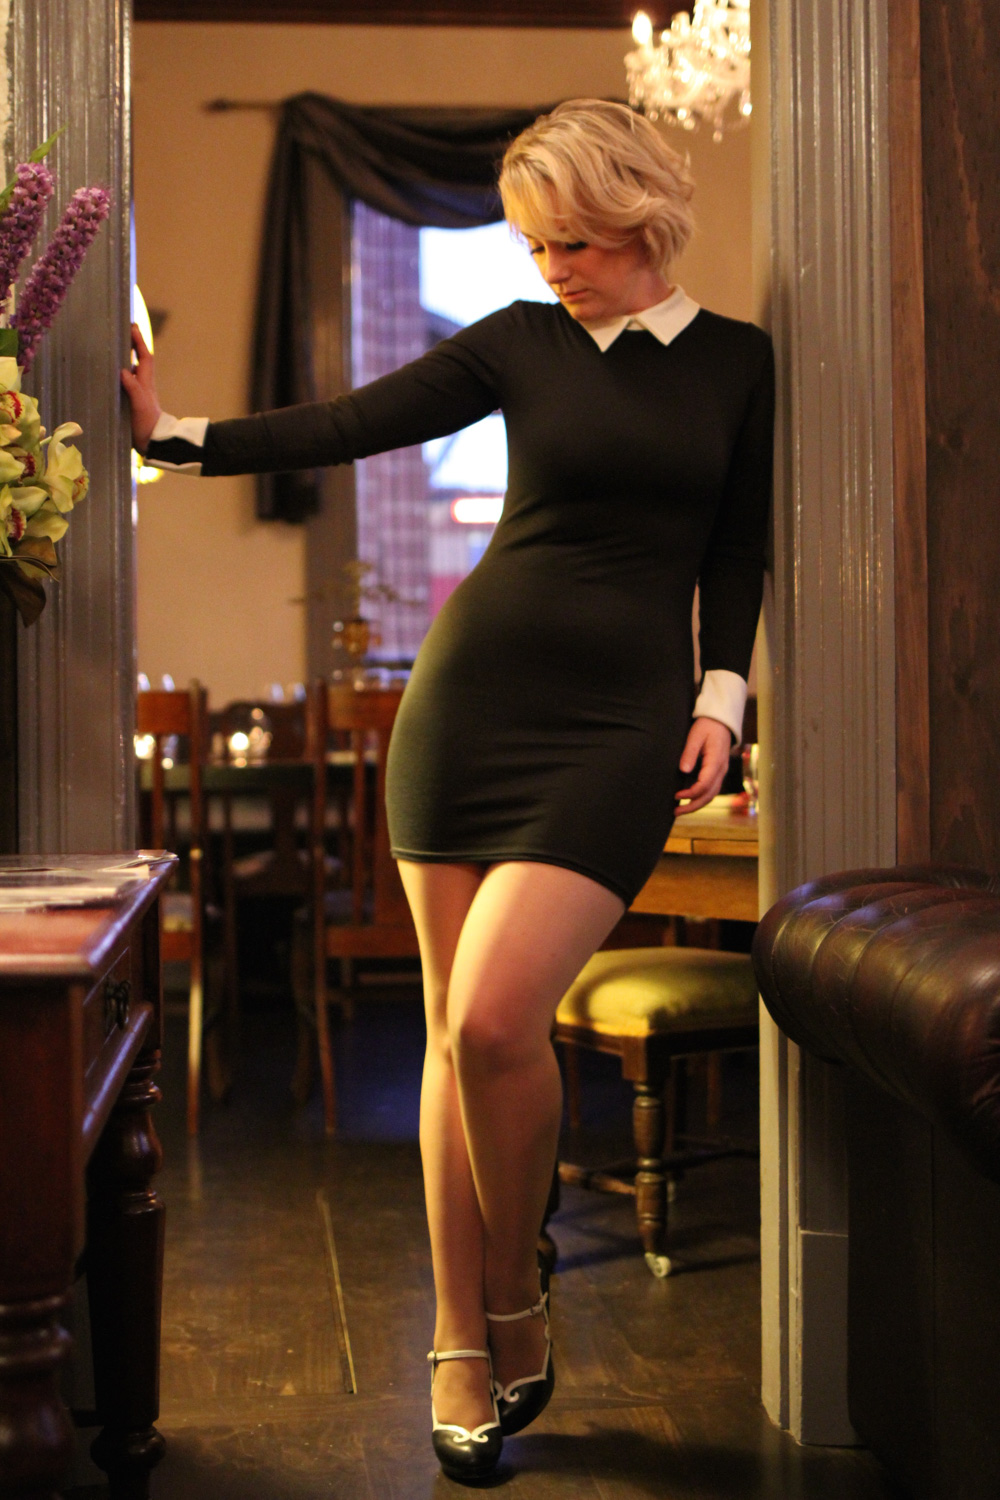 @findingfemme for the boohoo.com #WeAreUs campaign wearing black bodycon dress at Bar Wat in Ballarat.